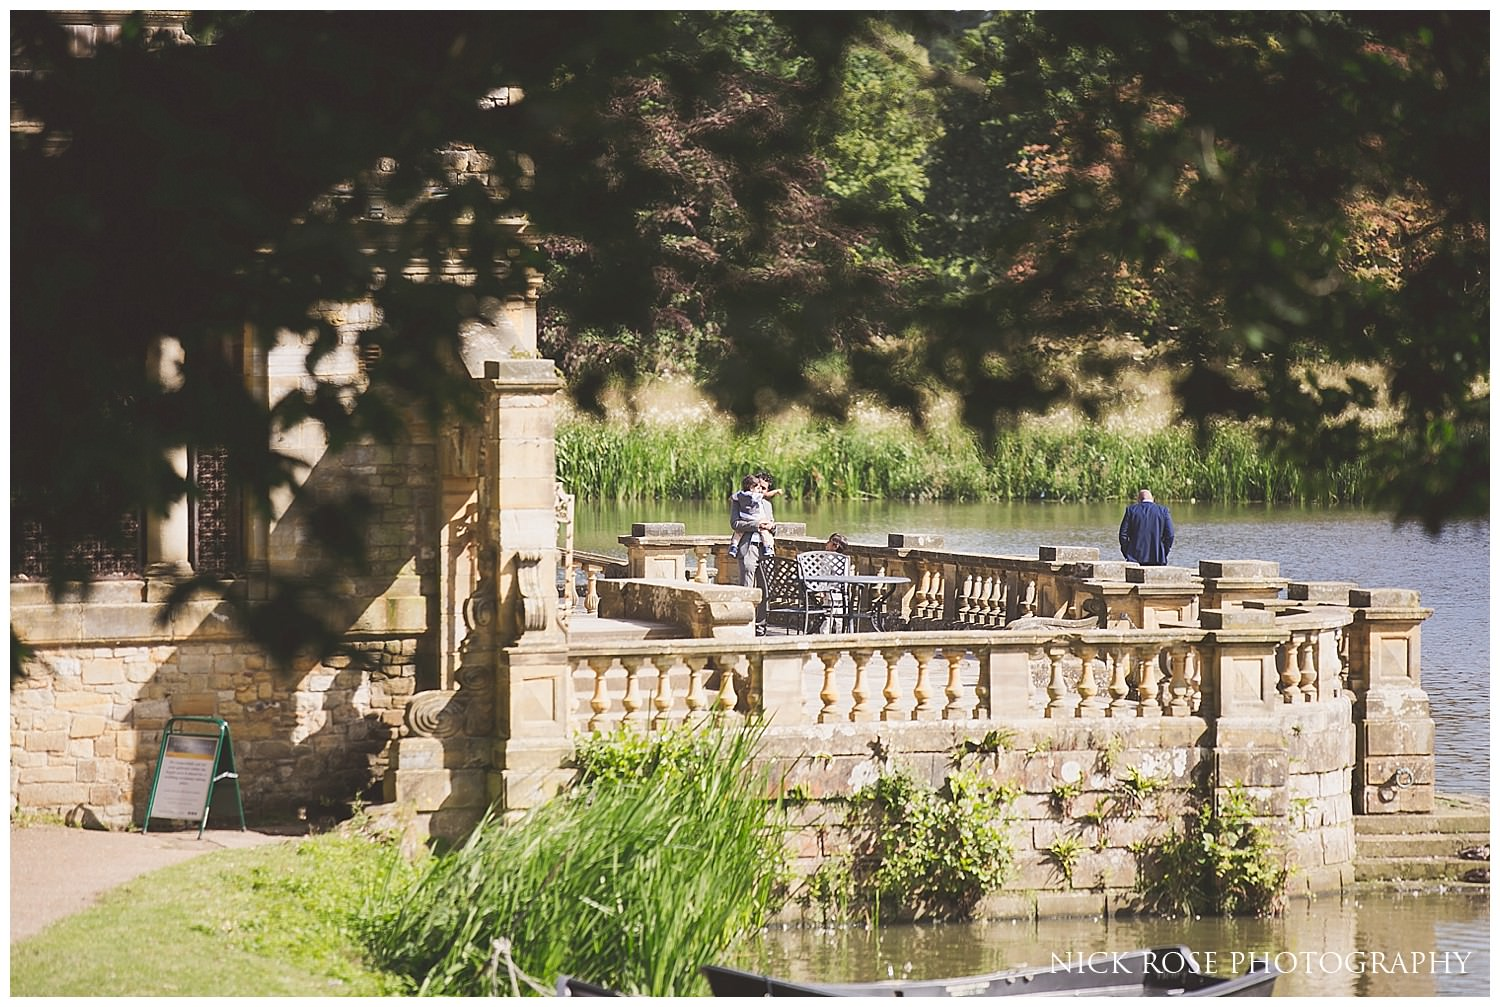 Outdoor summer wedding by the lake at Hever Castle in Kent